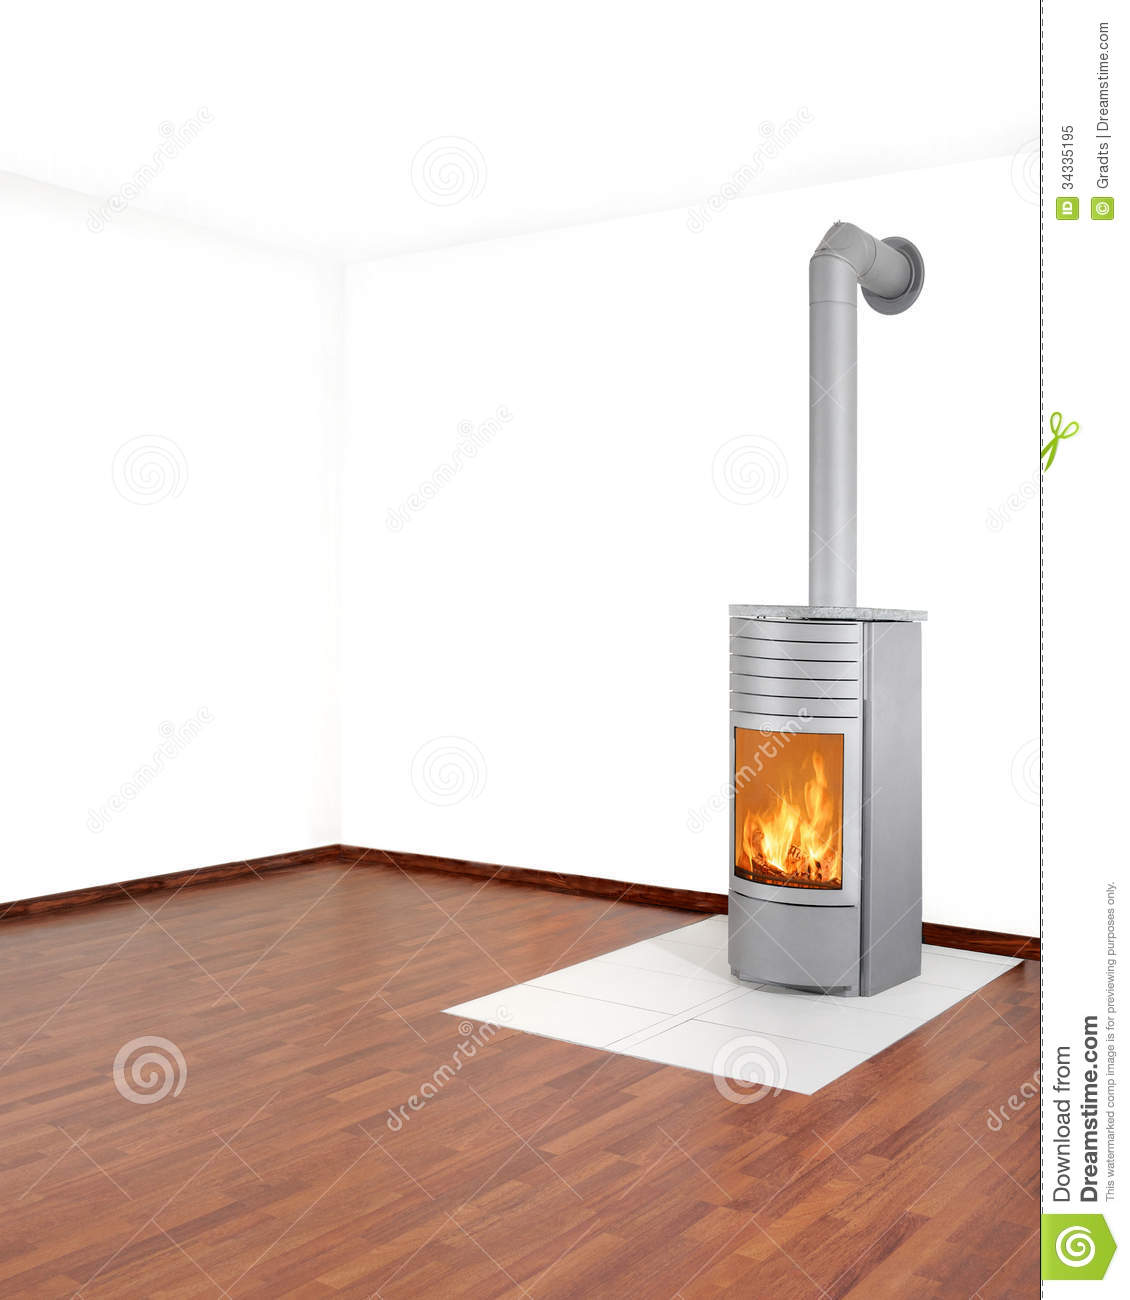 Heater stock image. Image of burn, stovepipe, flue, tiles - 34335195